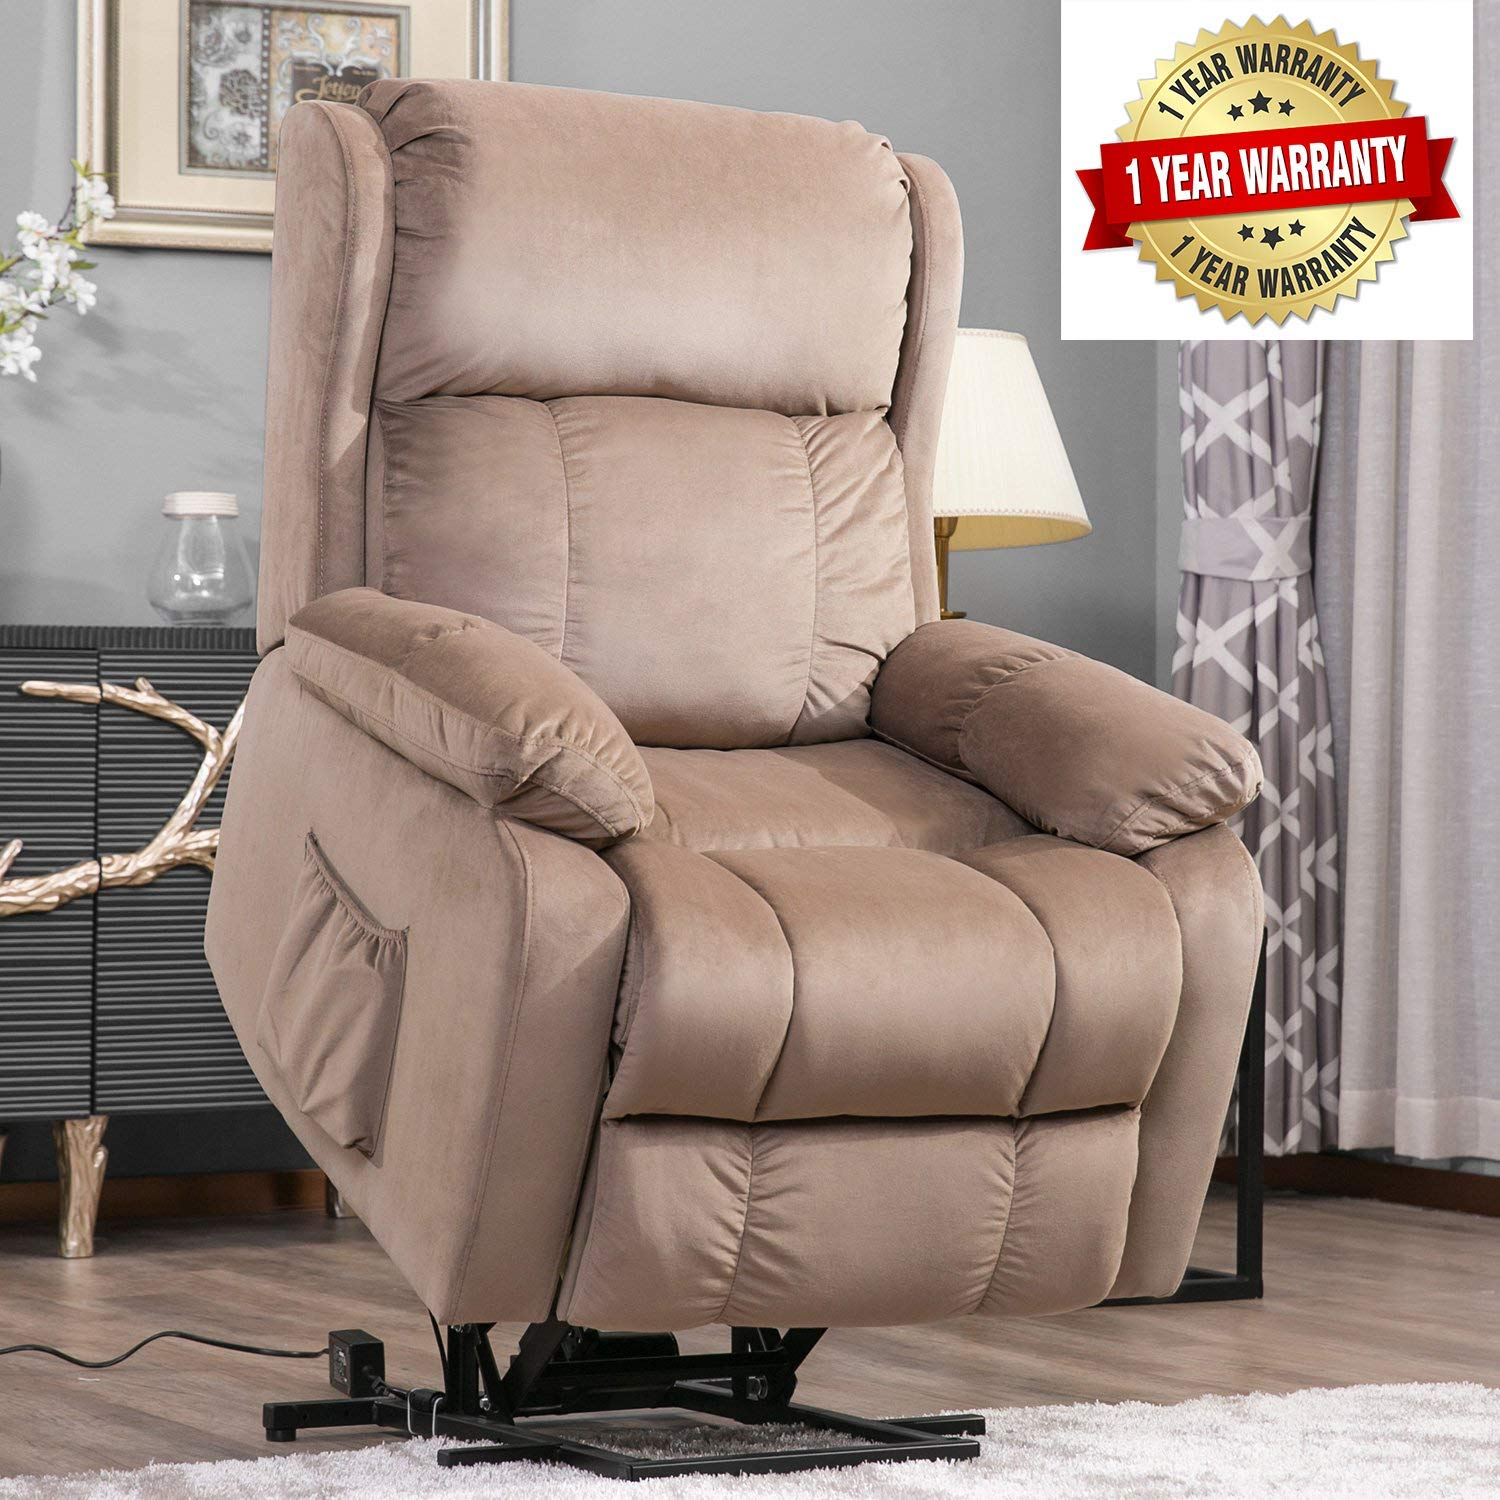 Harper&Bright Designs Power Lift Chair Soft Fabric Upholstery Recliner Living Room Sofa Chair with Remote by Harper & Bright Designs